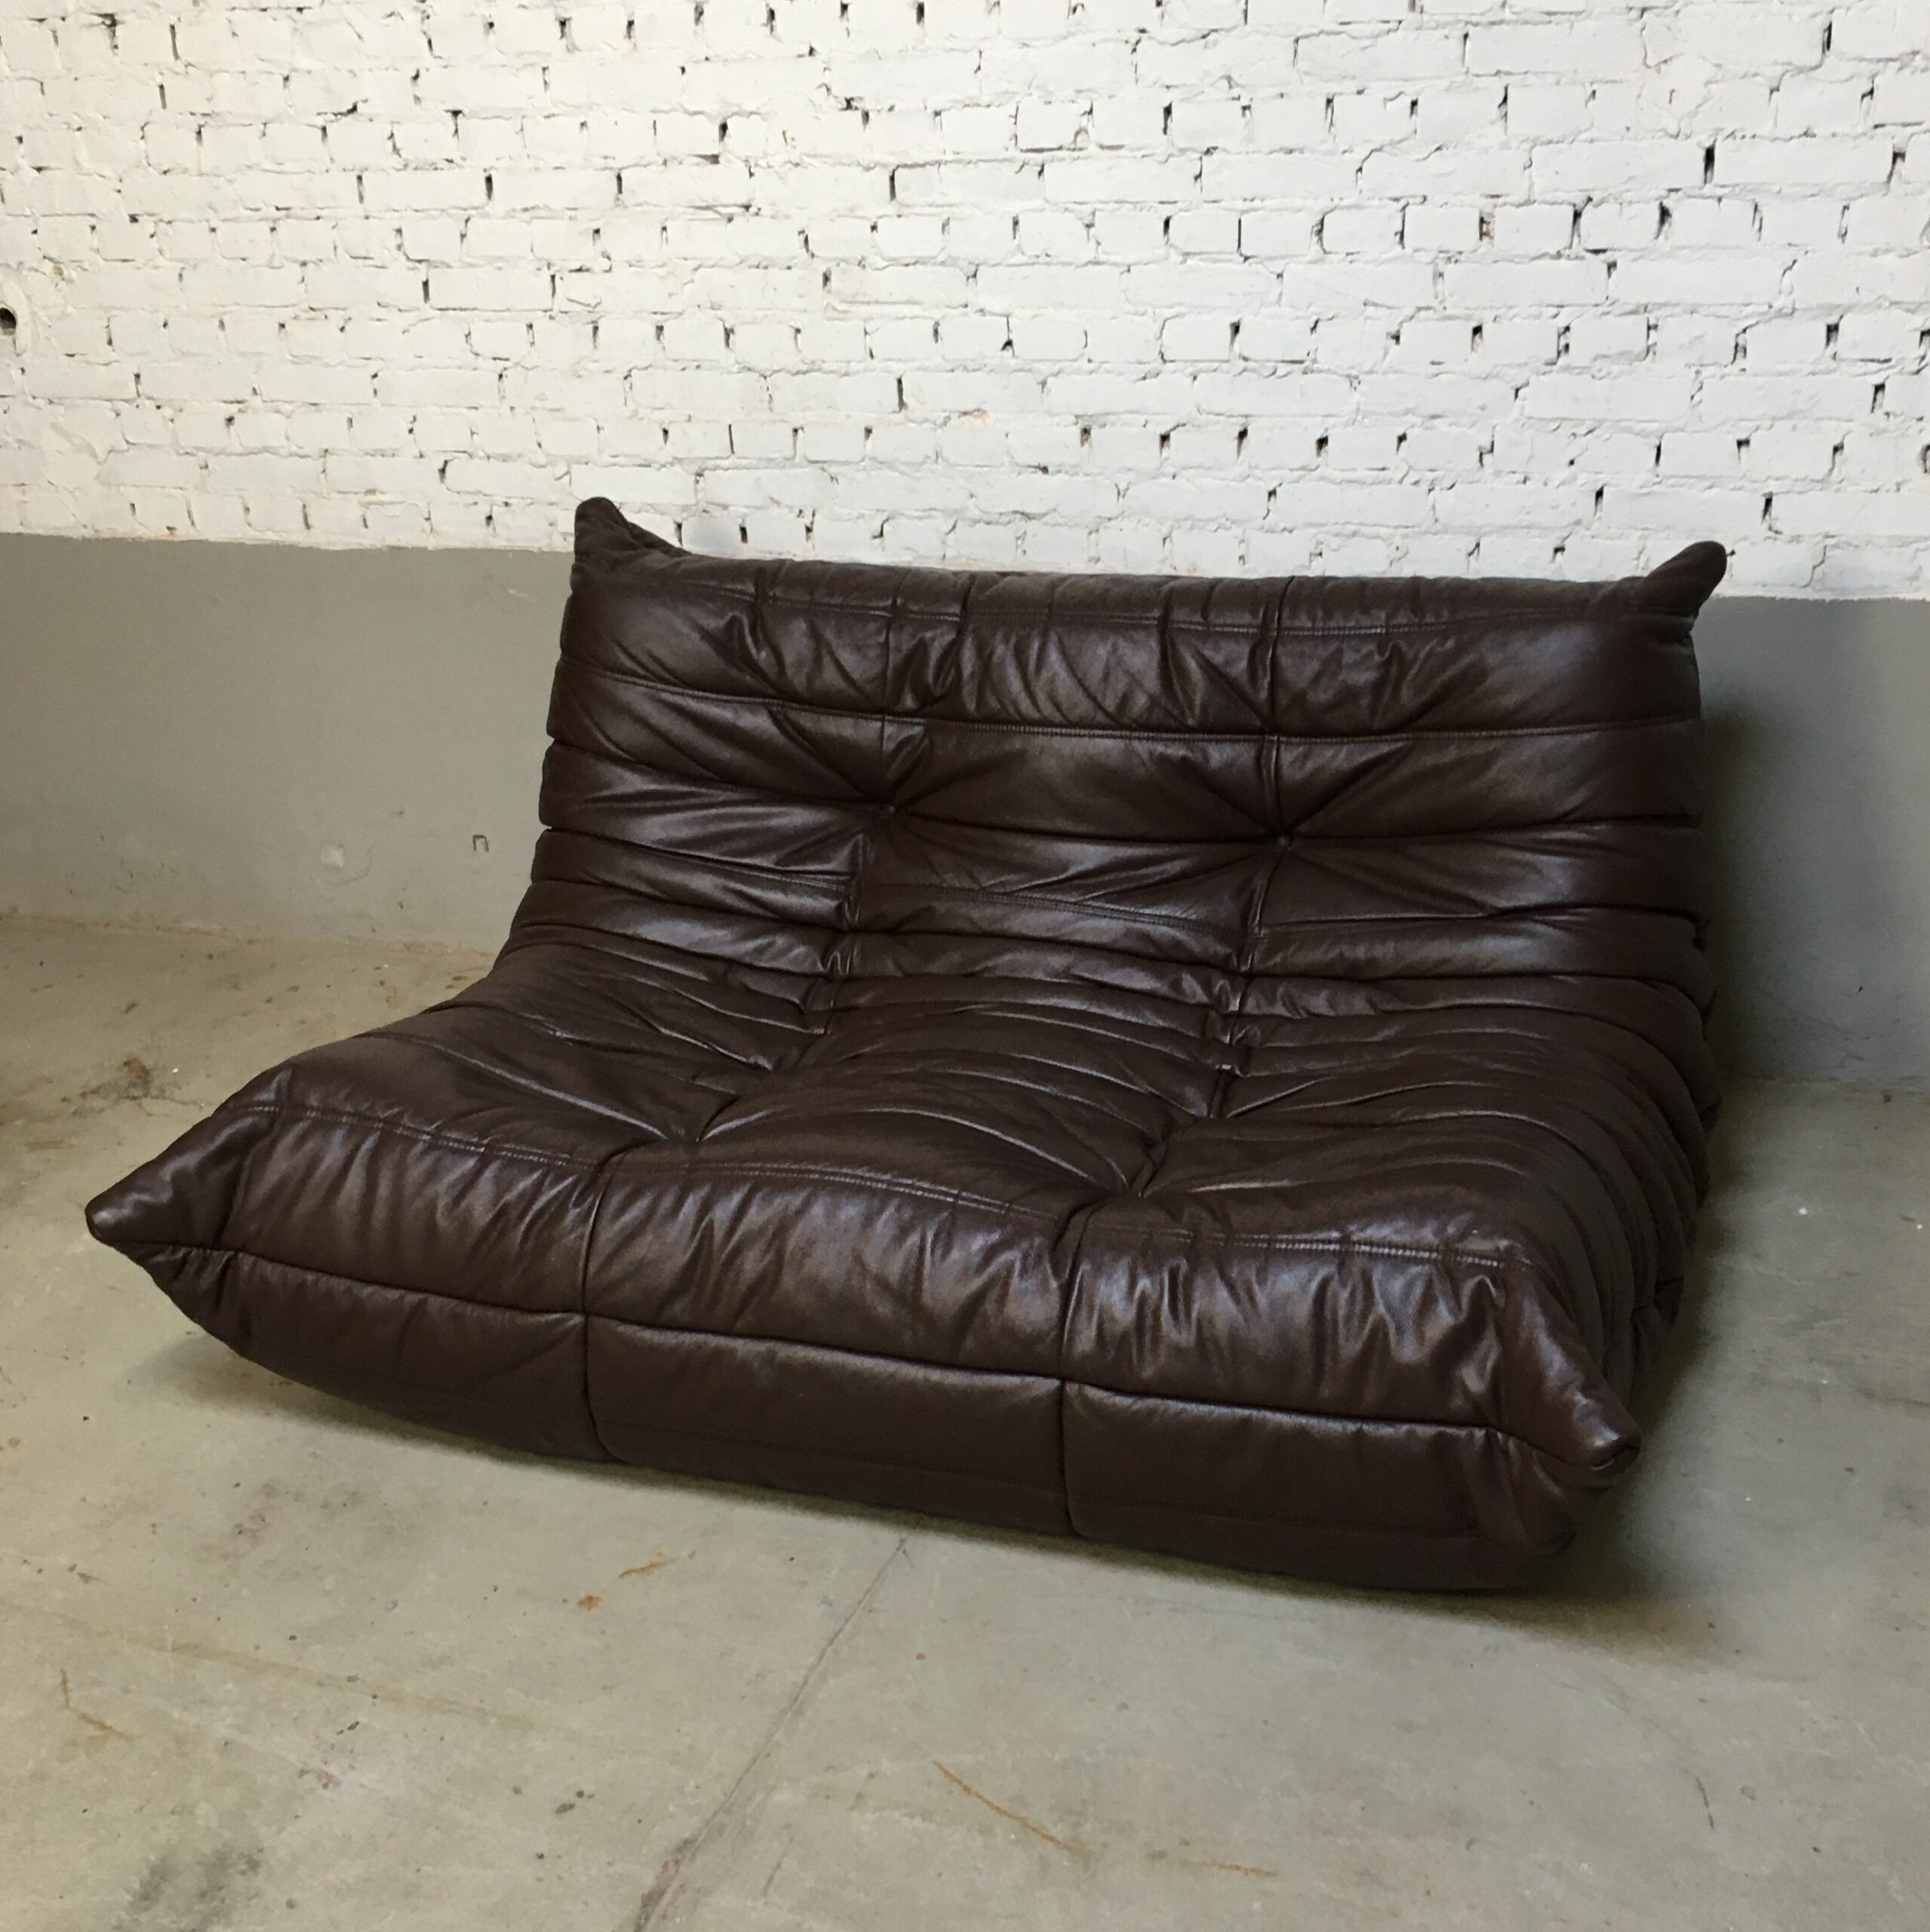 Full Size of Ligne Roset Togo Sofa Replica Fake For Sale Used Sessel Reproduction Cost Uk Dimensions Farben Chair By Michel Ducaroy 116048 Wohnzimmer Ligne Roset Togo